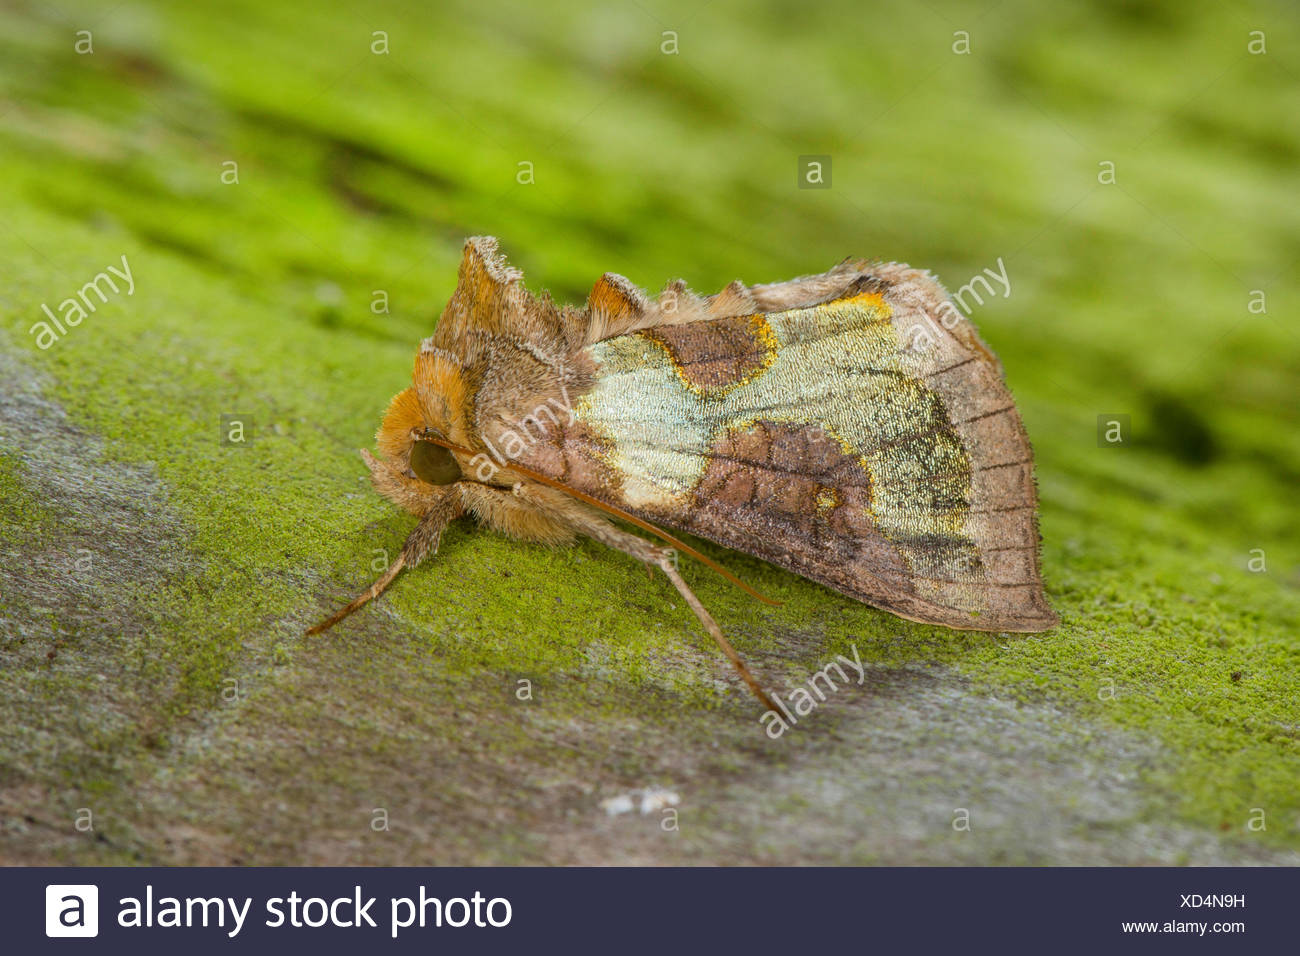 Burnished brass (Diachrysia chrysitis, Plusia chrysitis, Phytometra chrysitis), on green bark, Germany - Stock Image